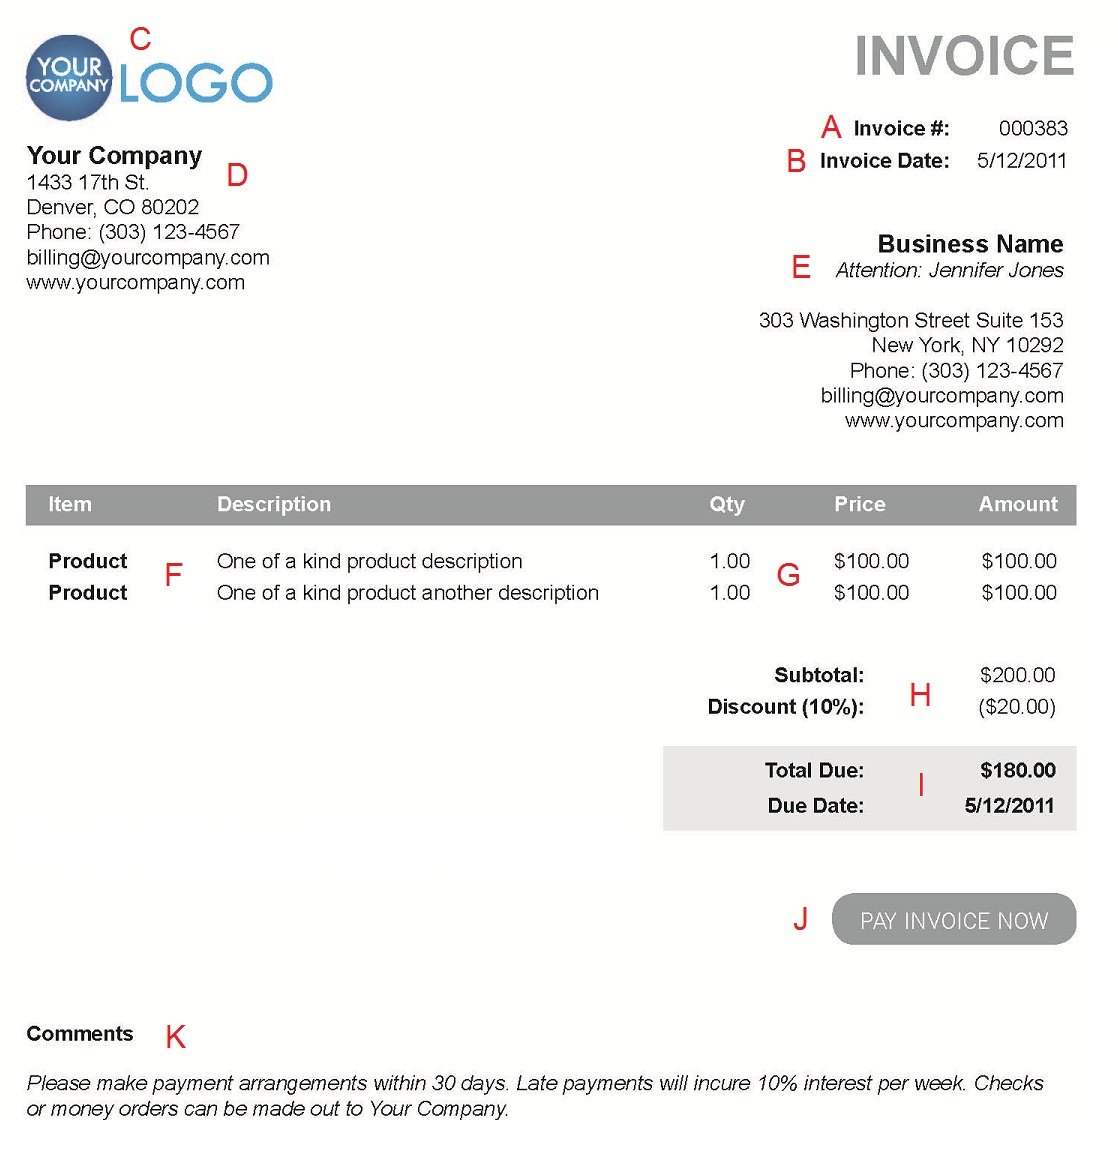 Soulfulpowerus  Marvellous The  Different Sections Of An Electronic Payment Invoice With Inspiring A  With Appealing Rent Receipts Format Also Petty Cash Receipt Book In Addition Component Hand Receipt And Taxi Receipt Blank As Well As Refund Without Receipt Additionally Home Depot Receipt Number From Paysimplecom With Soulfulpowerus  Inspiring The  Different Sections Of An Electronic Payment Invoice With Appealing A  And Marvellous Rent Receipts Format Also Petty Cash Receipt Book In Addition Component Hand Receipt From Paysimplecom